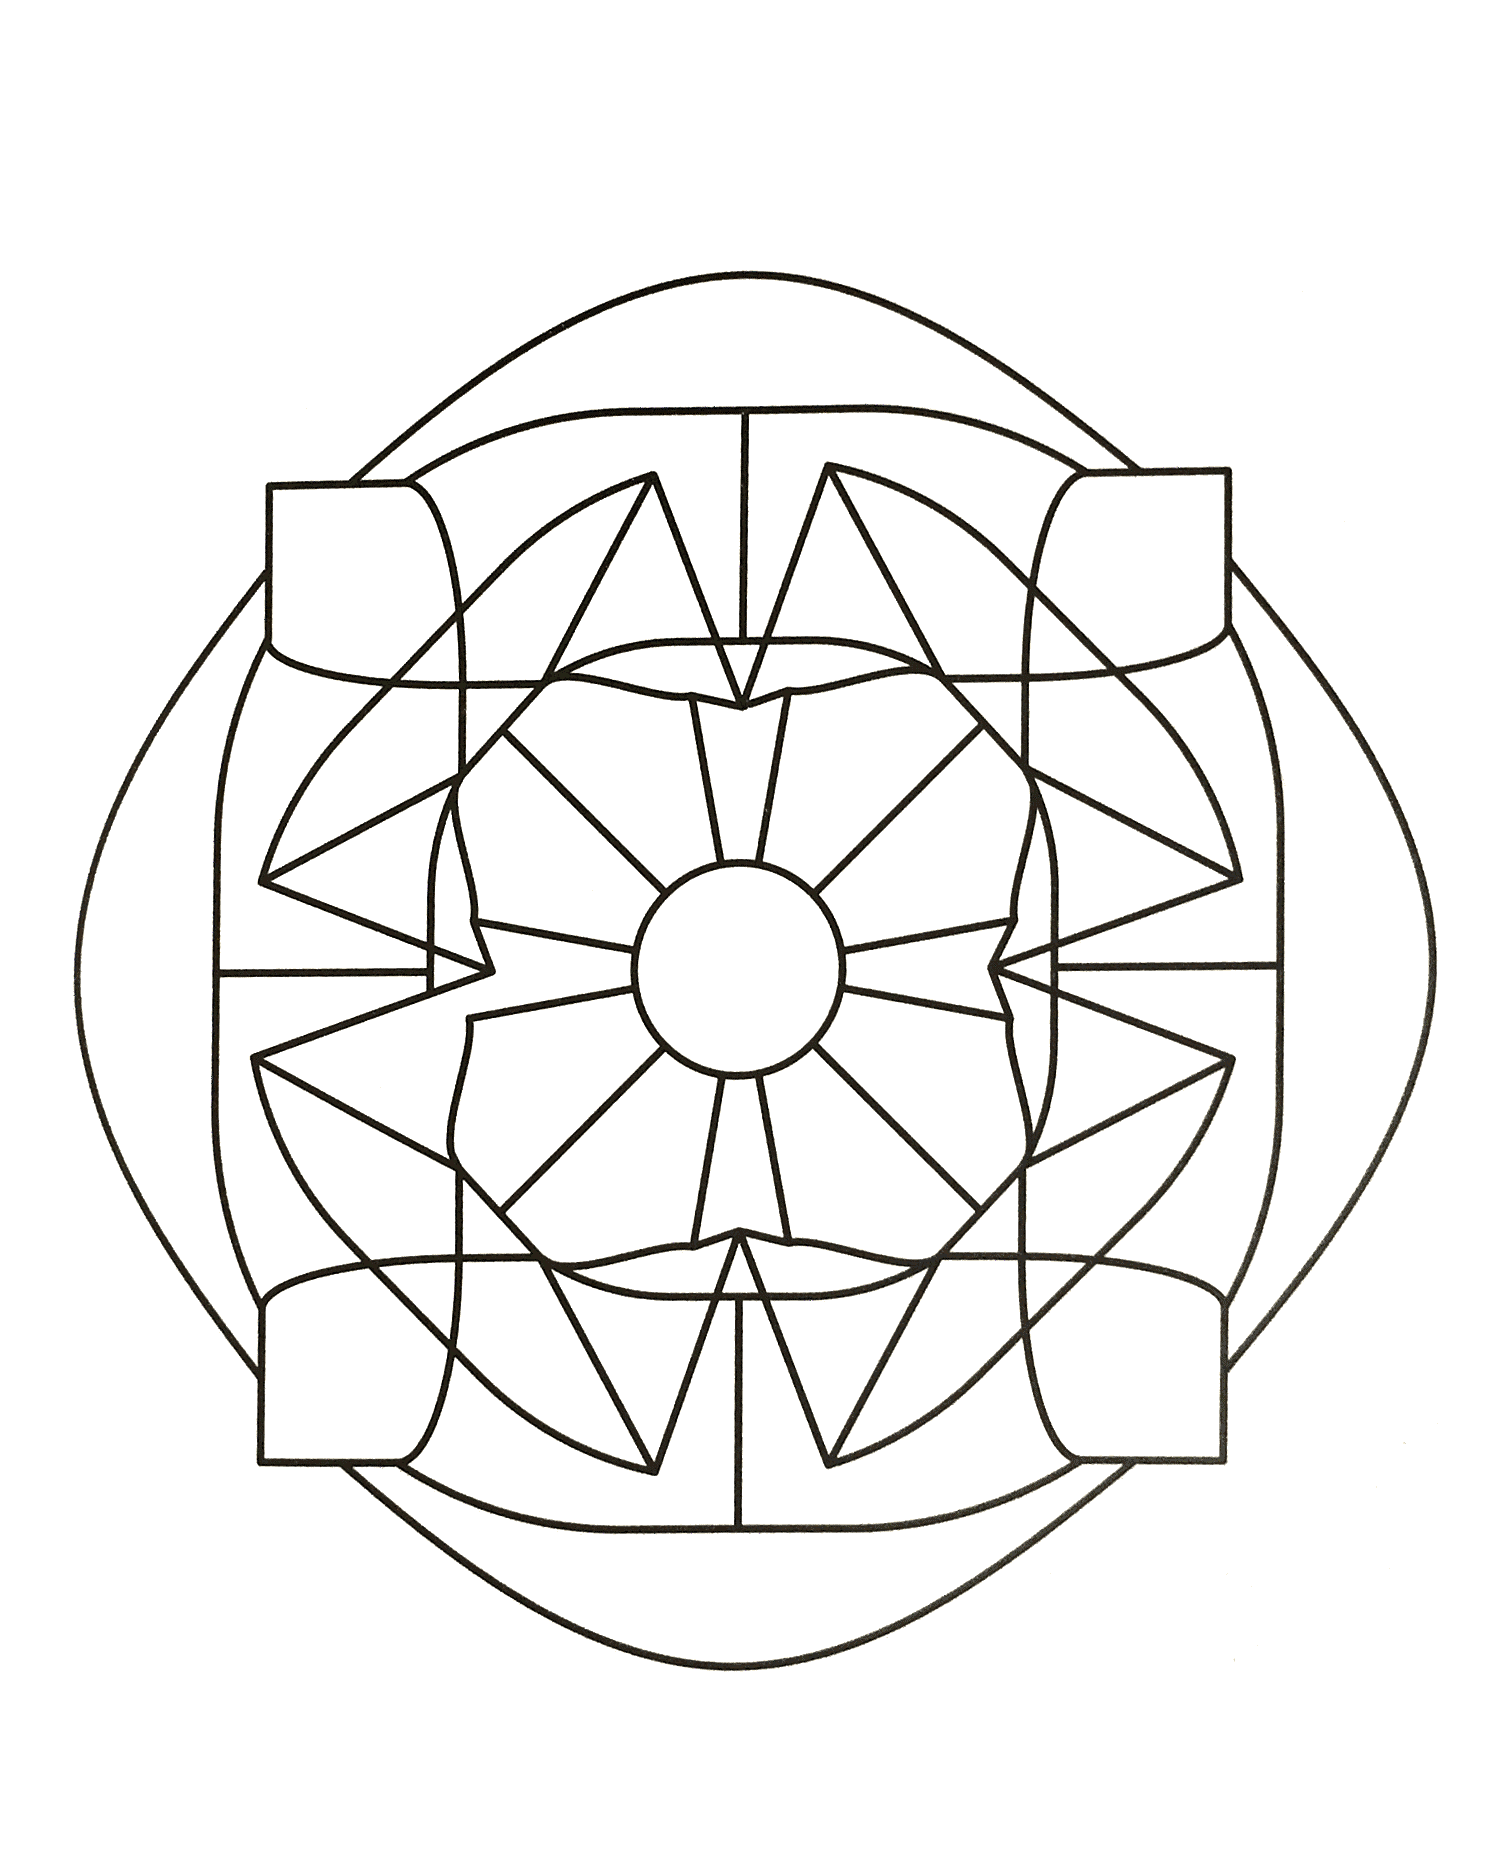 Simple mandala 74 - M&alas Coloring pages for kids to ...